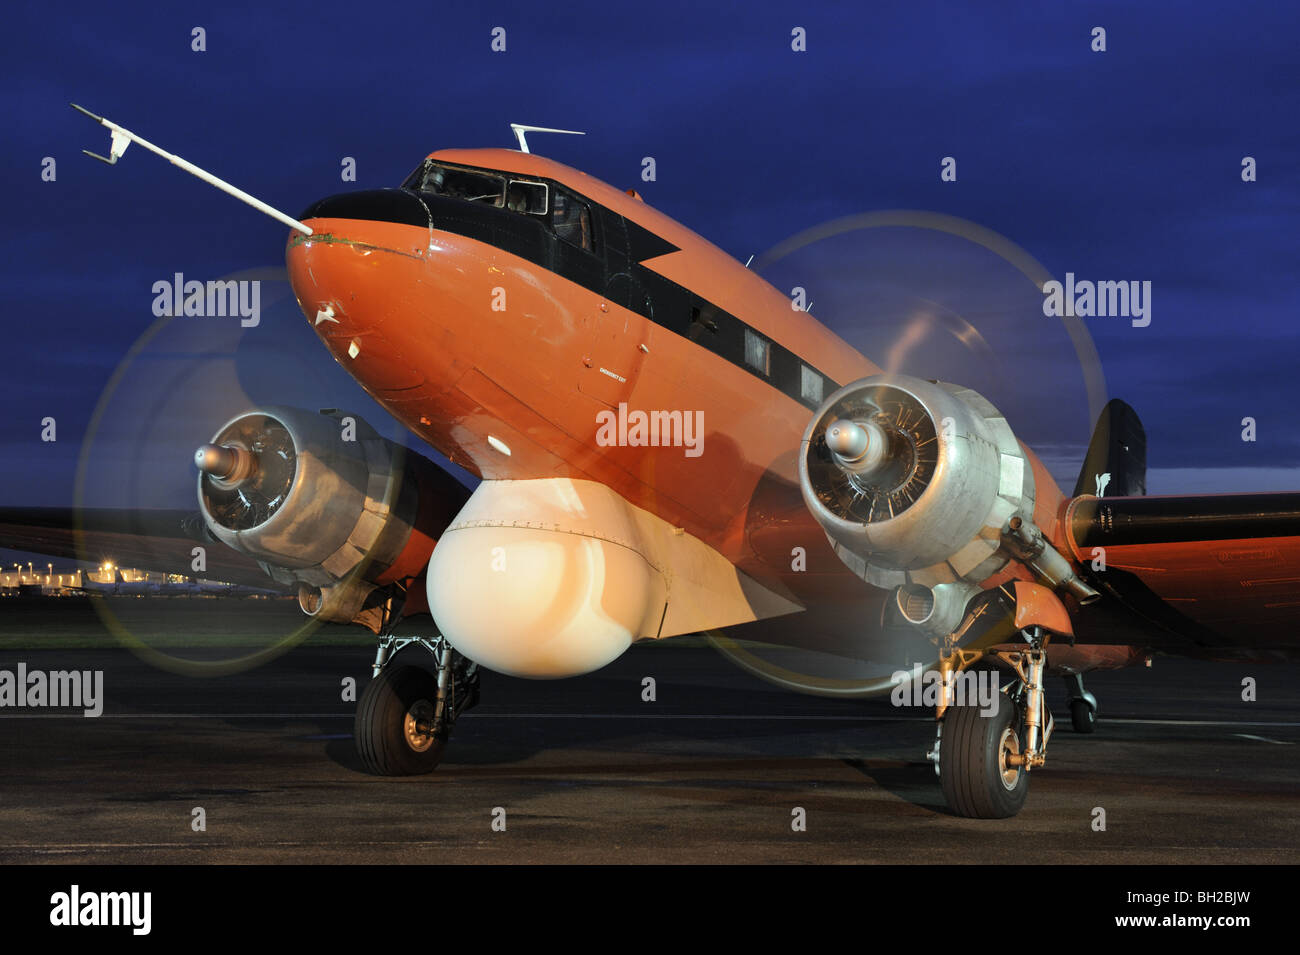 Vintage Douglas DC 3 Dakota aircraft taxying in the dark during a vintage display at Coventry Airport, UK. - Stock Image